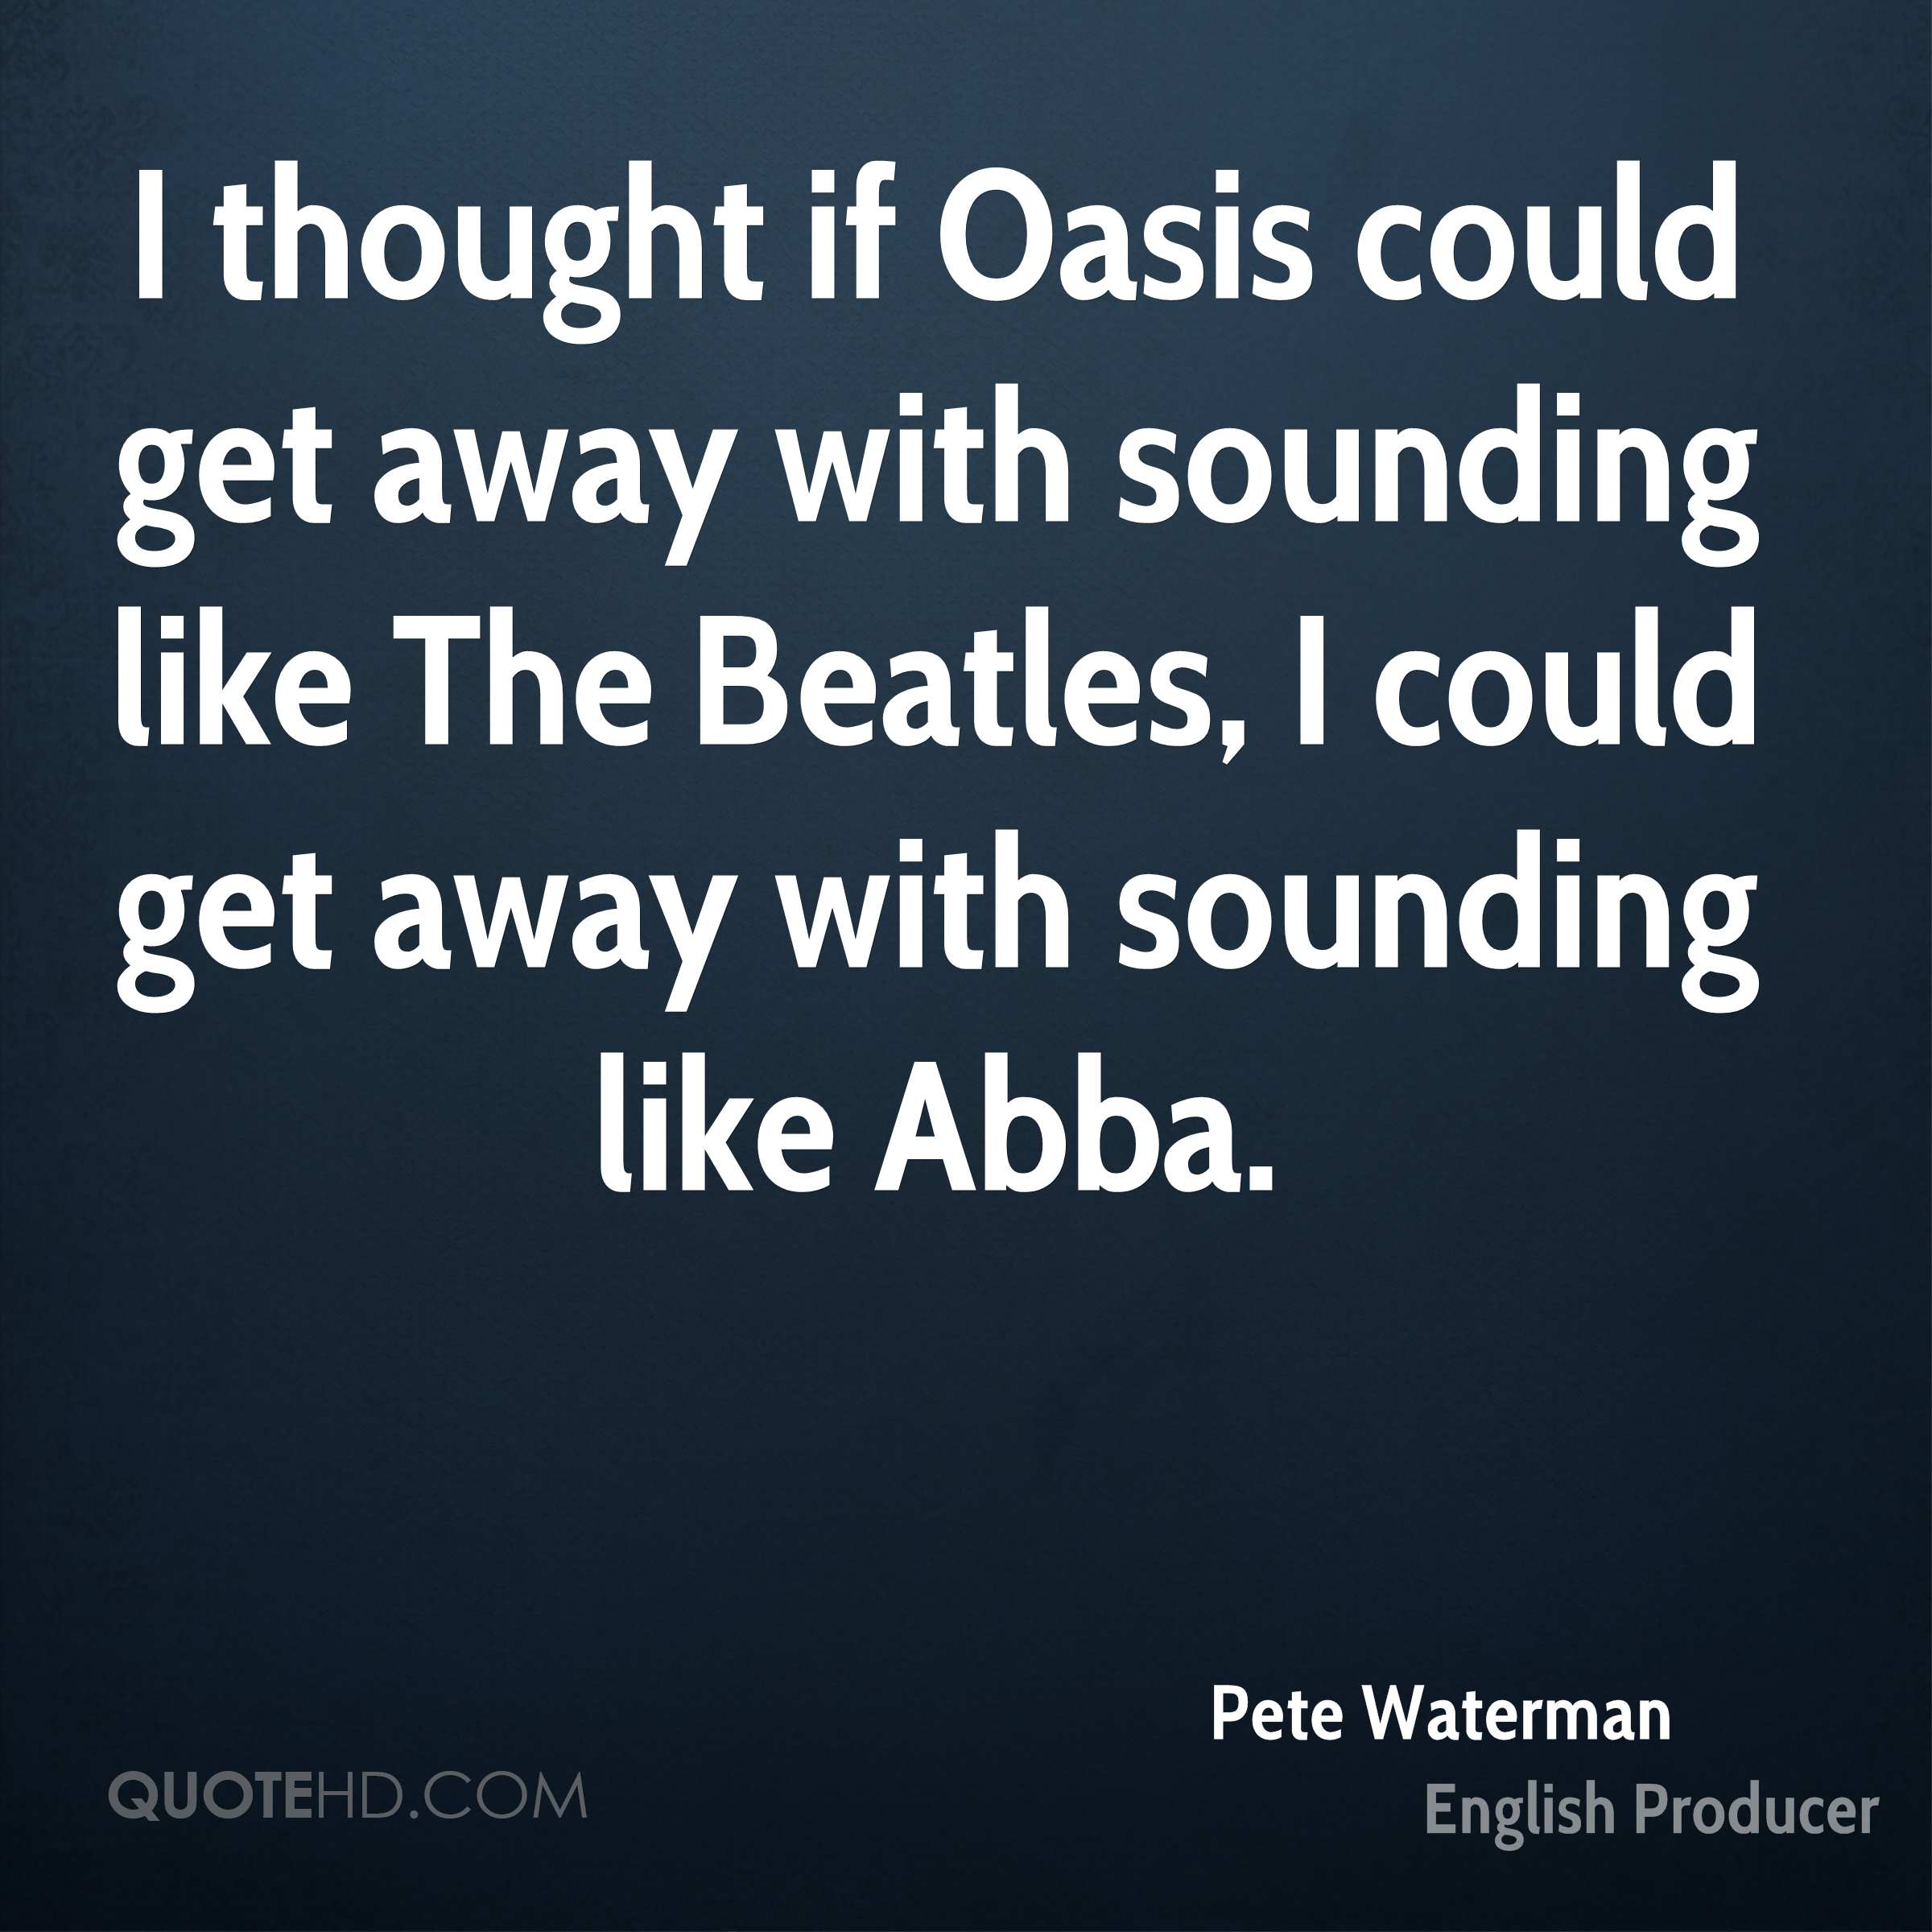 I thought if Oasis could get away with sounding like The Beatles, I could get away with sounding like Abba.